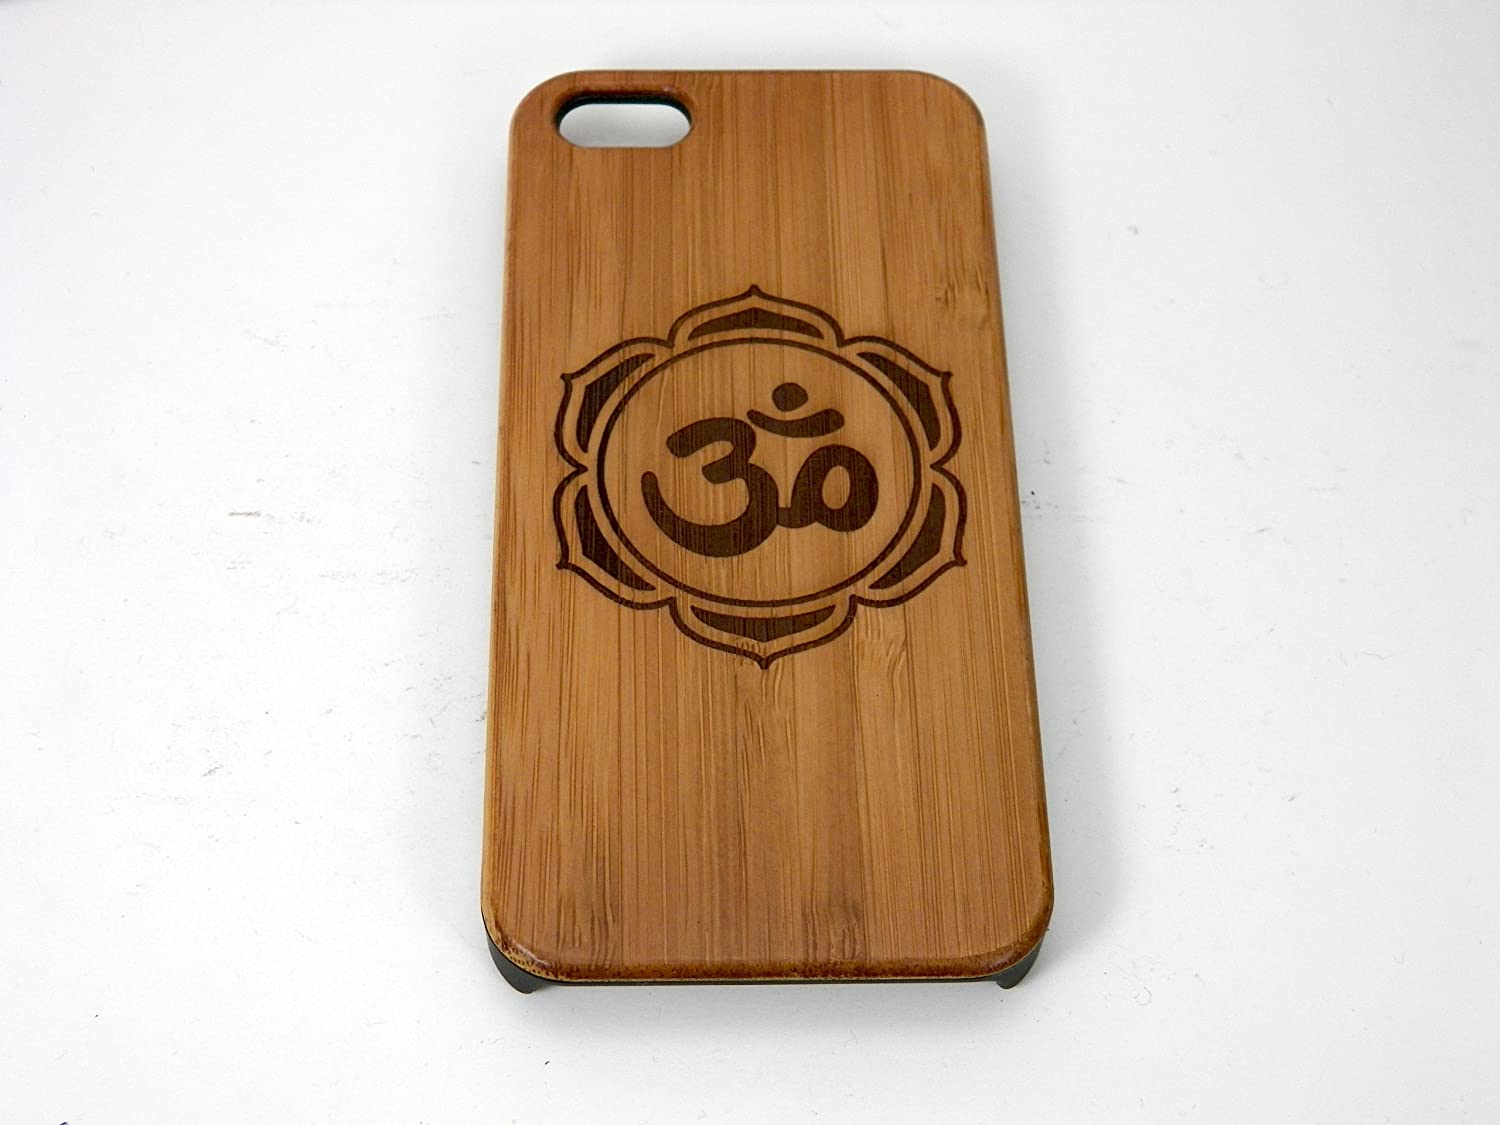 Amazon om lotus flower iphone 5 iphone 5s or iphone se case amazon om lotus flower iphone 5 iphone 5s or iphone se casecover by imakethecase eco friendly bamboo wood cover skin yoga chakra zen hindu izmirmasajfo